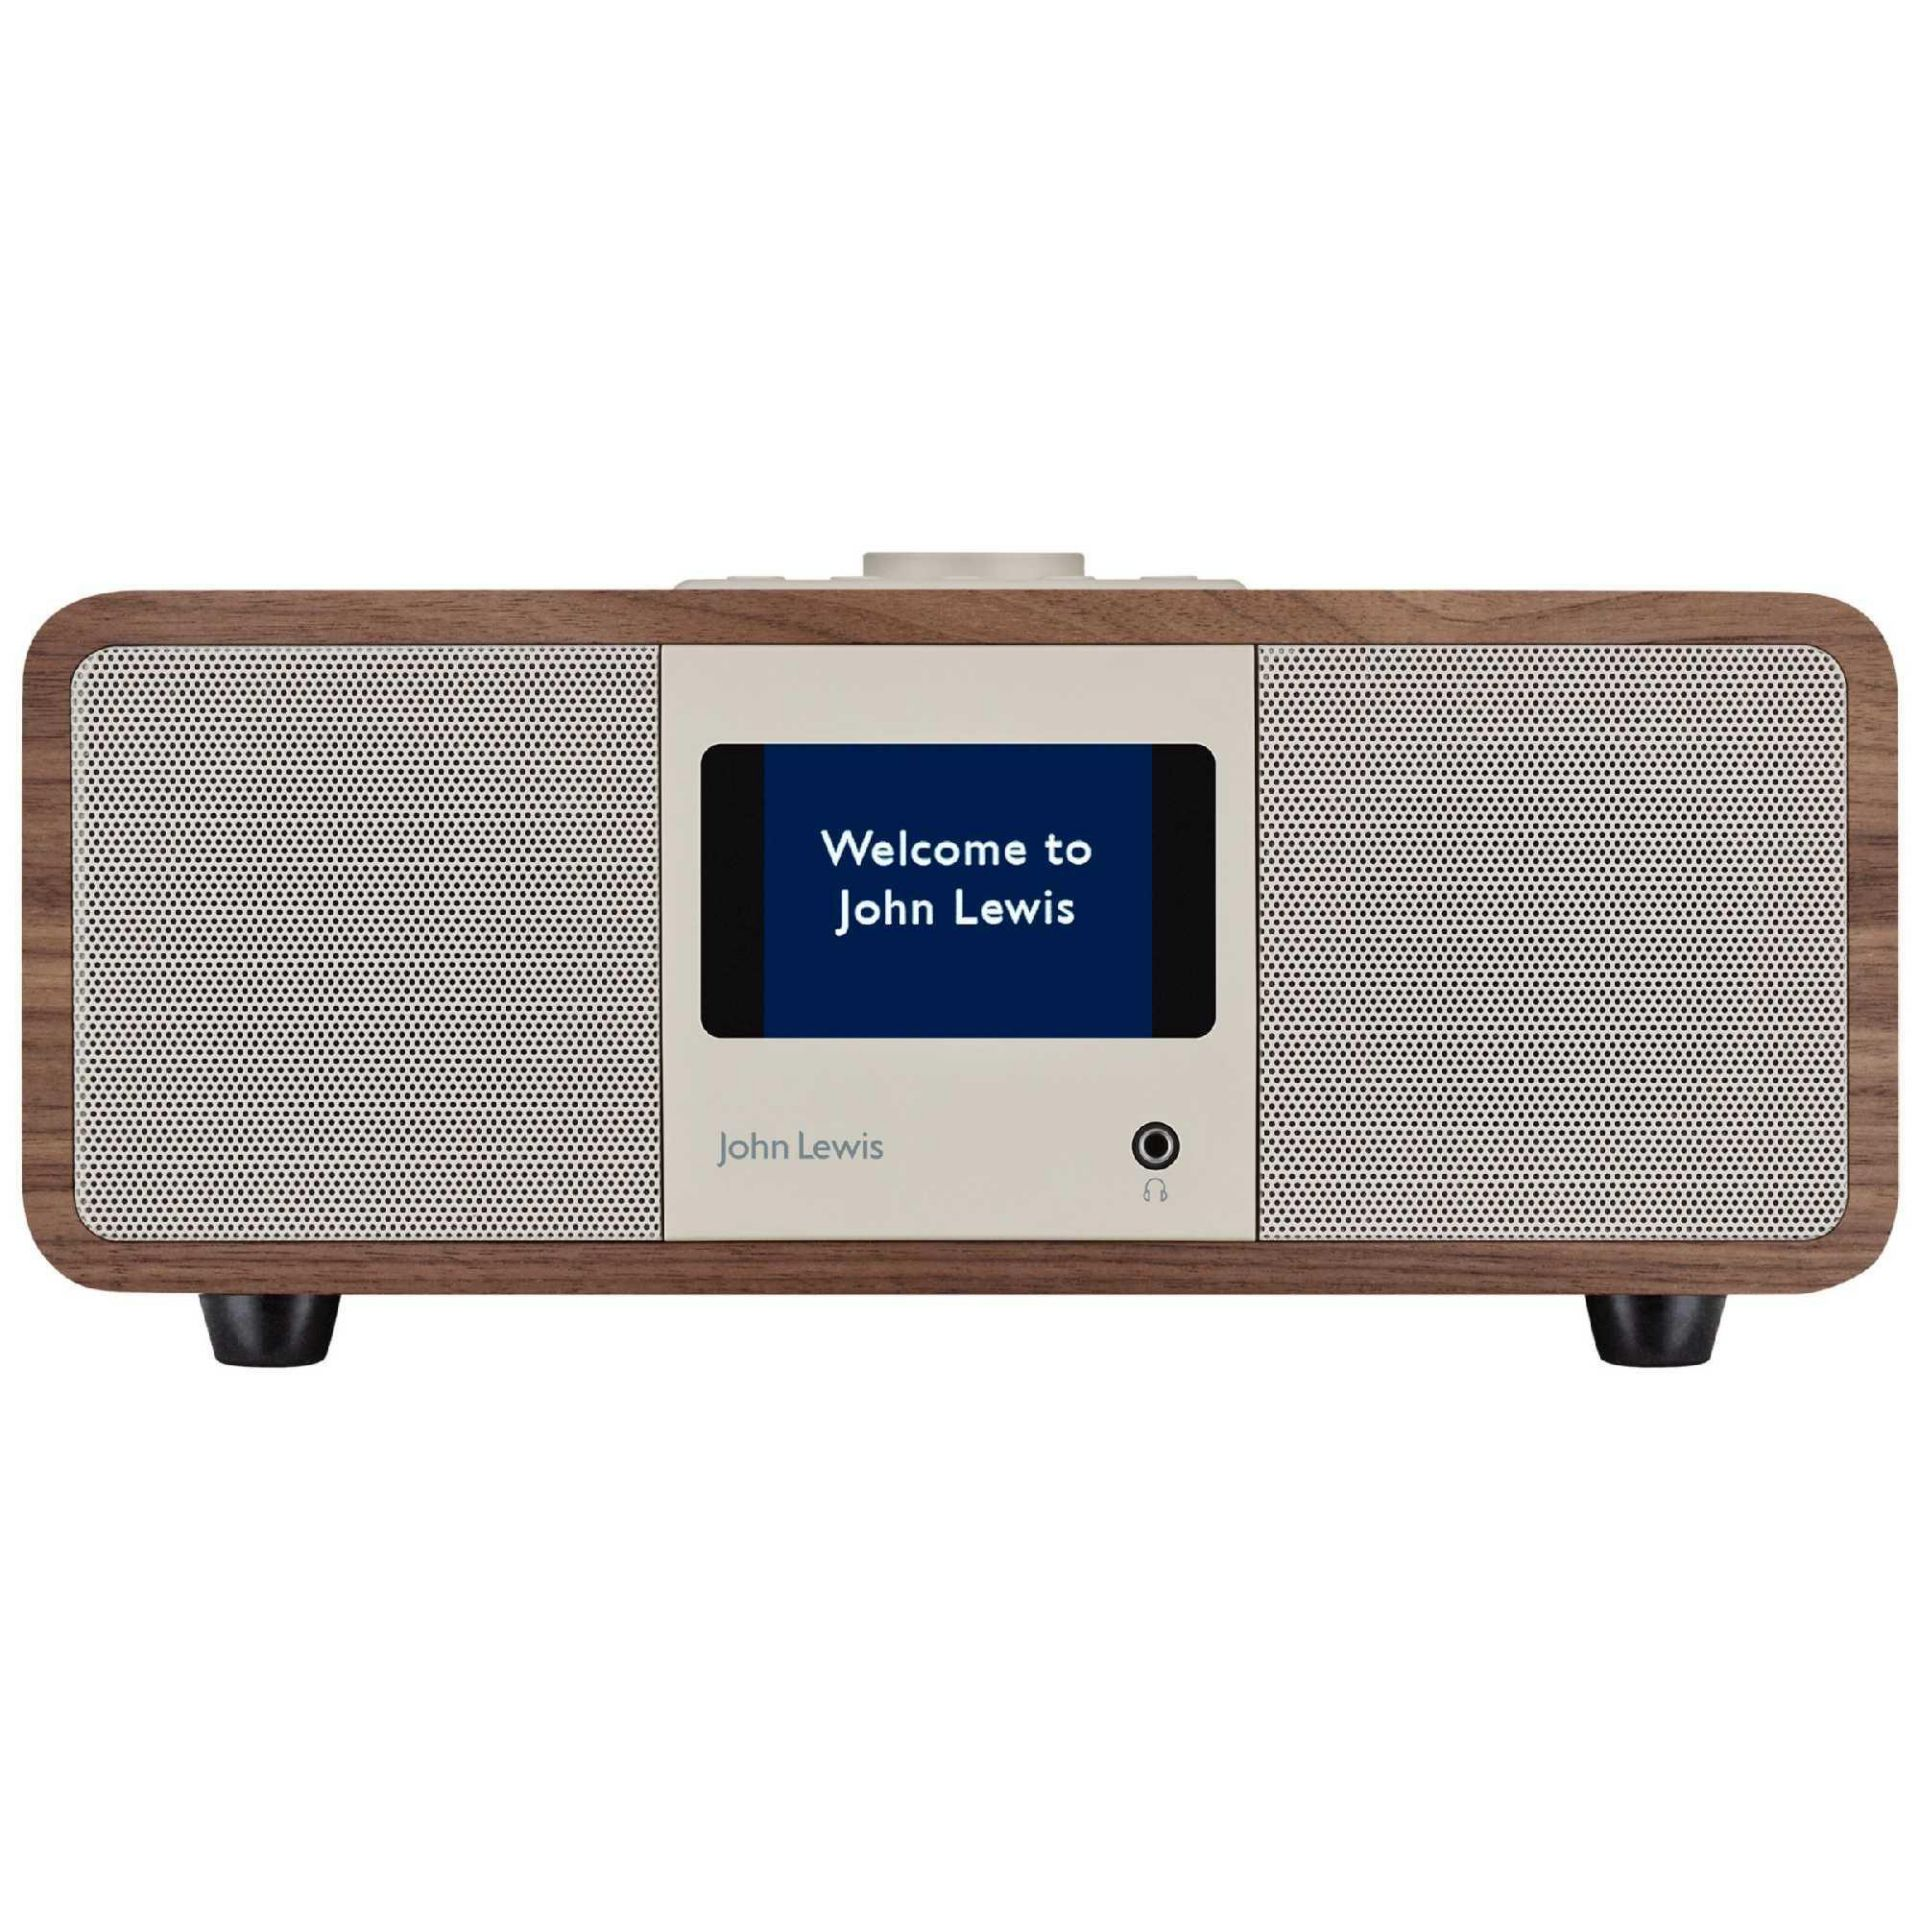 Lot 51 - RRP£200 Boxed John Lewis Cello Hi Fi Music System/Dab Radio With Built In Cd Player Wood Effect Desi